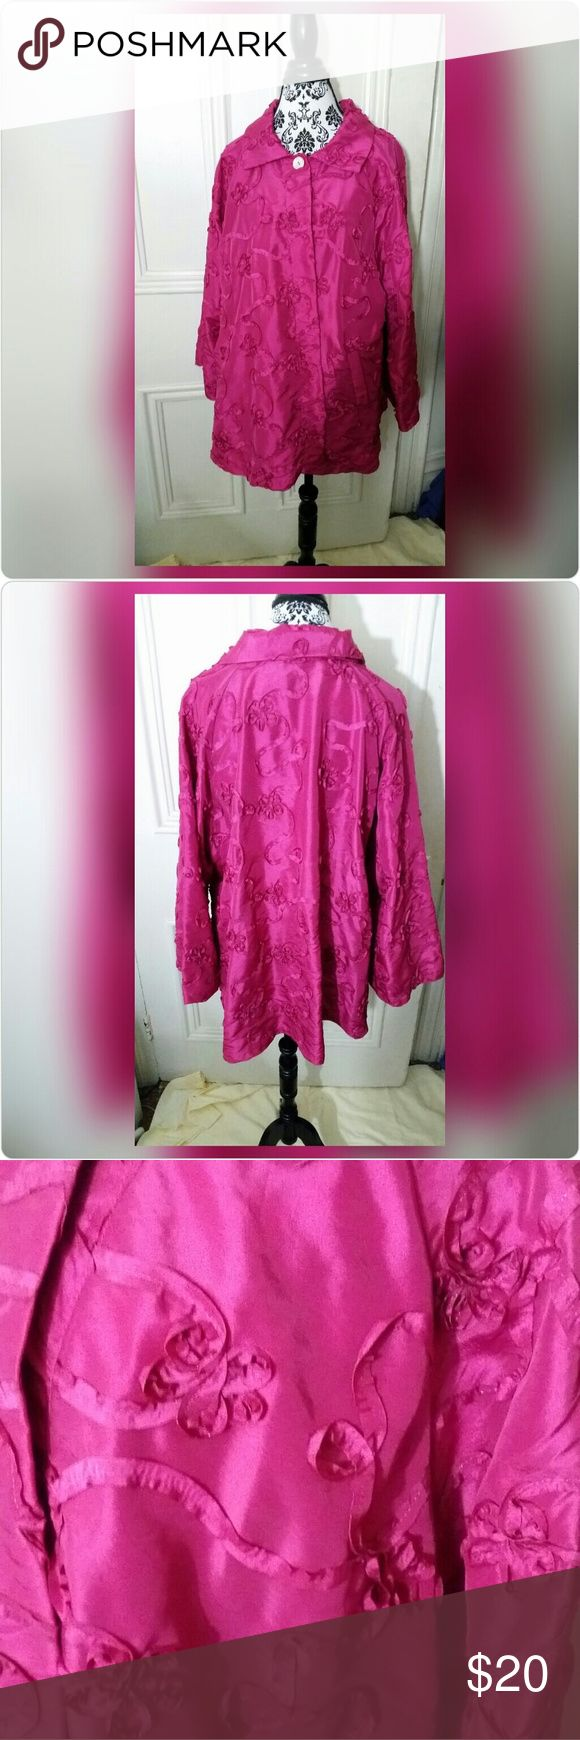 """Fuchsia Dressy Jacket with Ribbon Embroidery Heydari Size  1X  Beautiful bright pink, lightweight dressy jacket.  Single button closure at the neck Decorated with stunning ribbon embroidered applique embellishments that form flowers and  whimsical swirls. 100% polyester 30"""" long, 25"""" across the bust when laid flat Great for any dressy occasion or even date night! Heydari Jackets & Coats"""